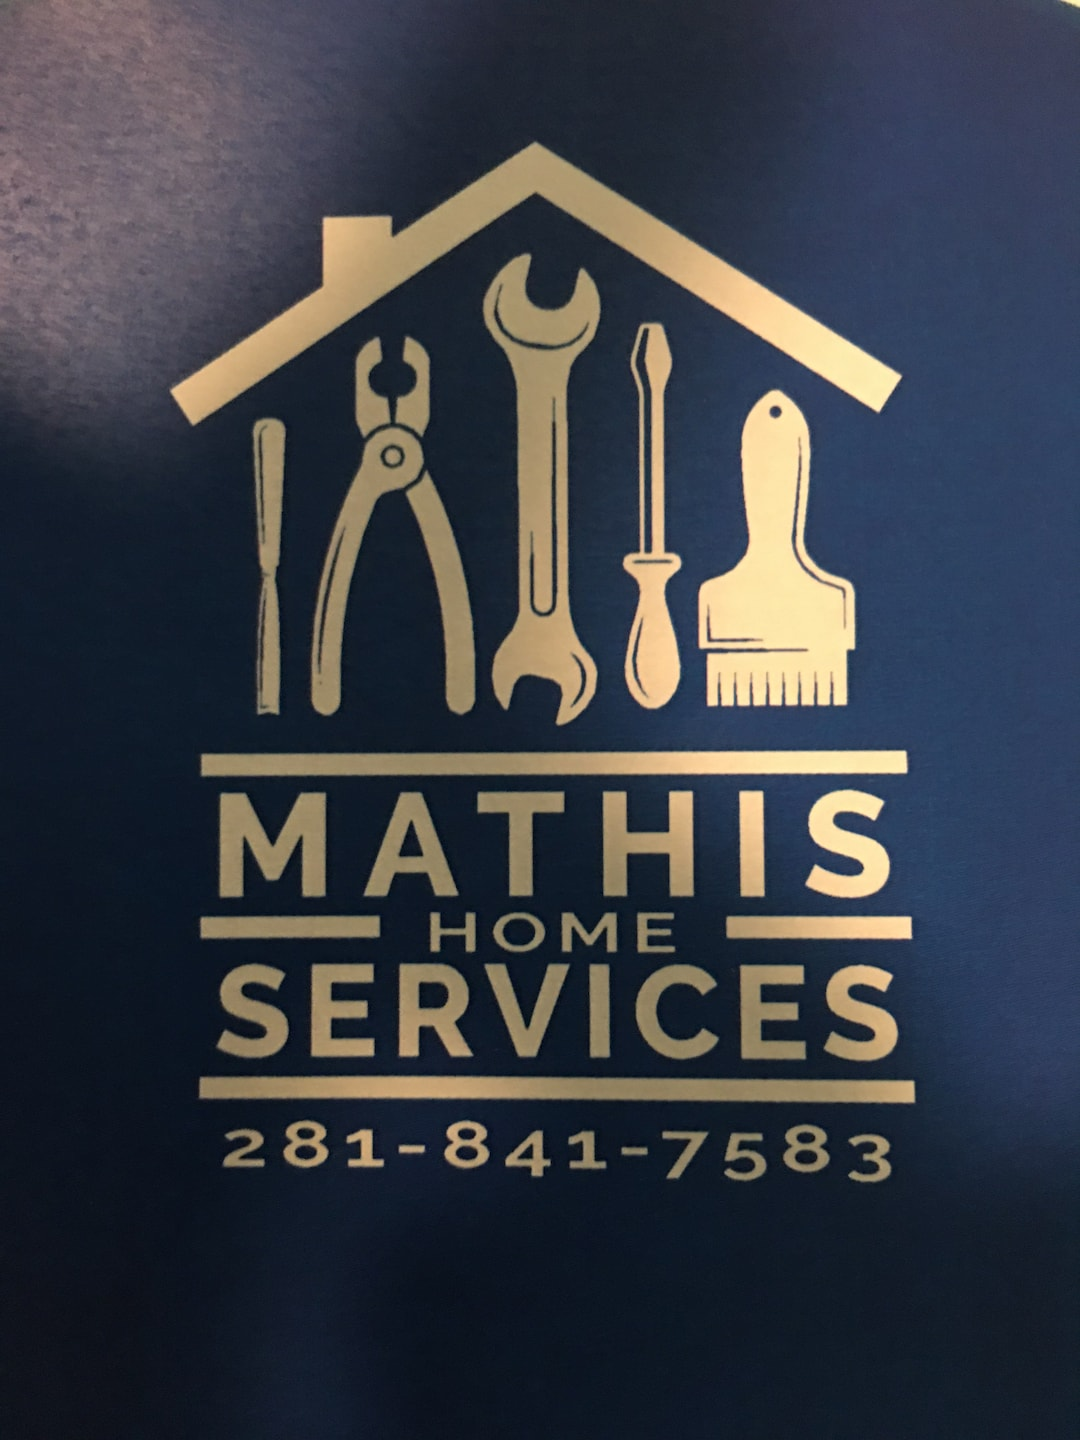 Mathis Home Services